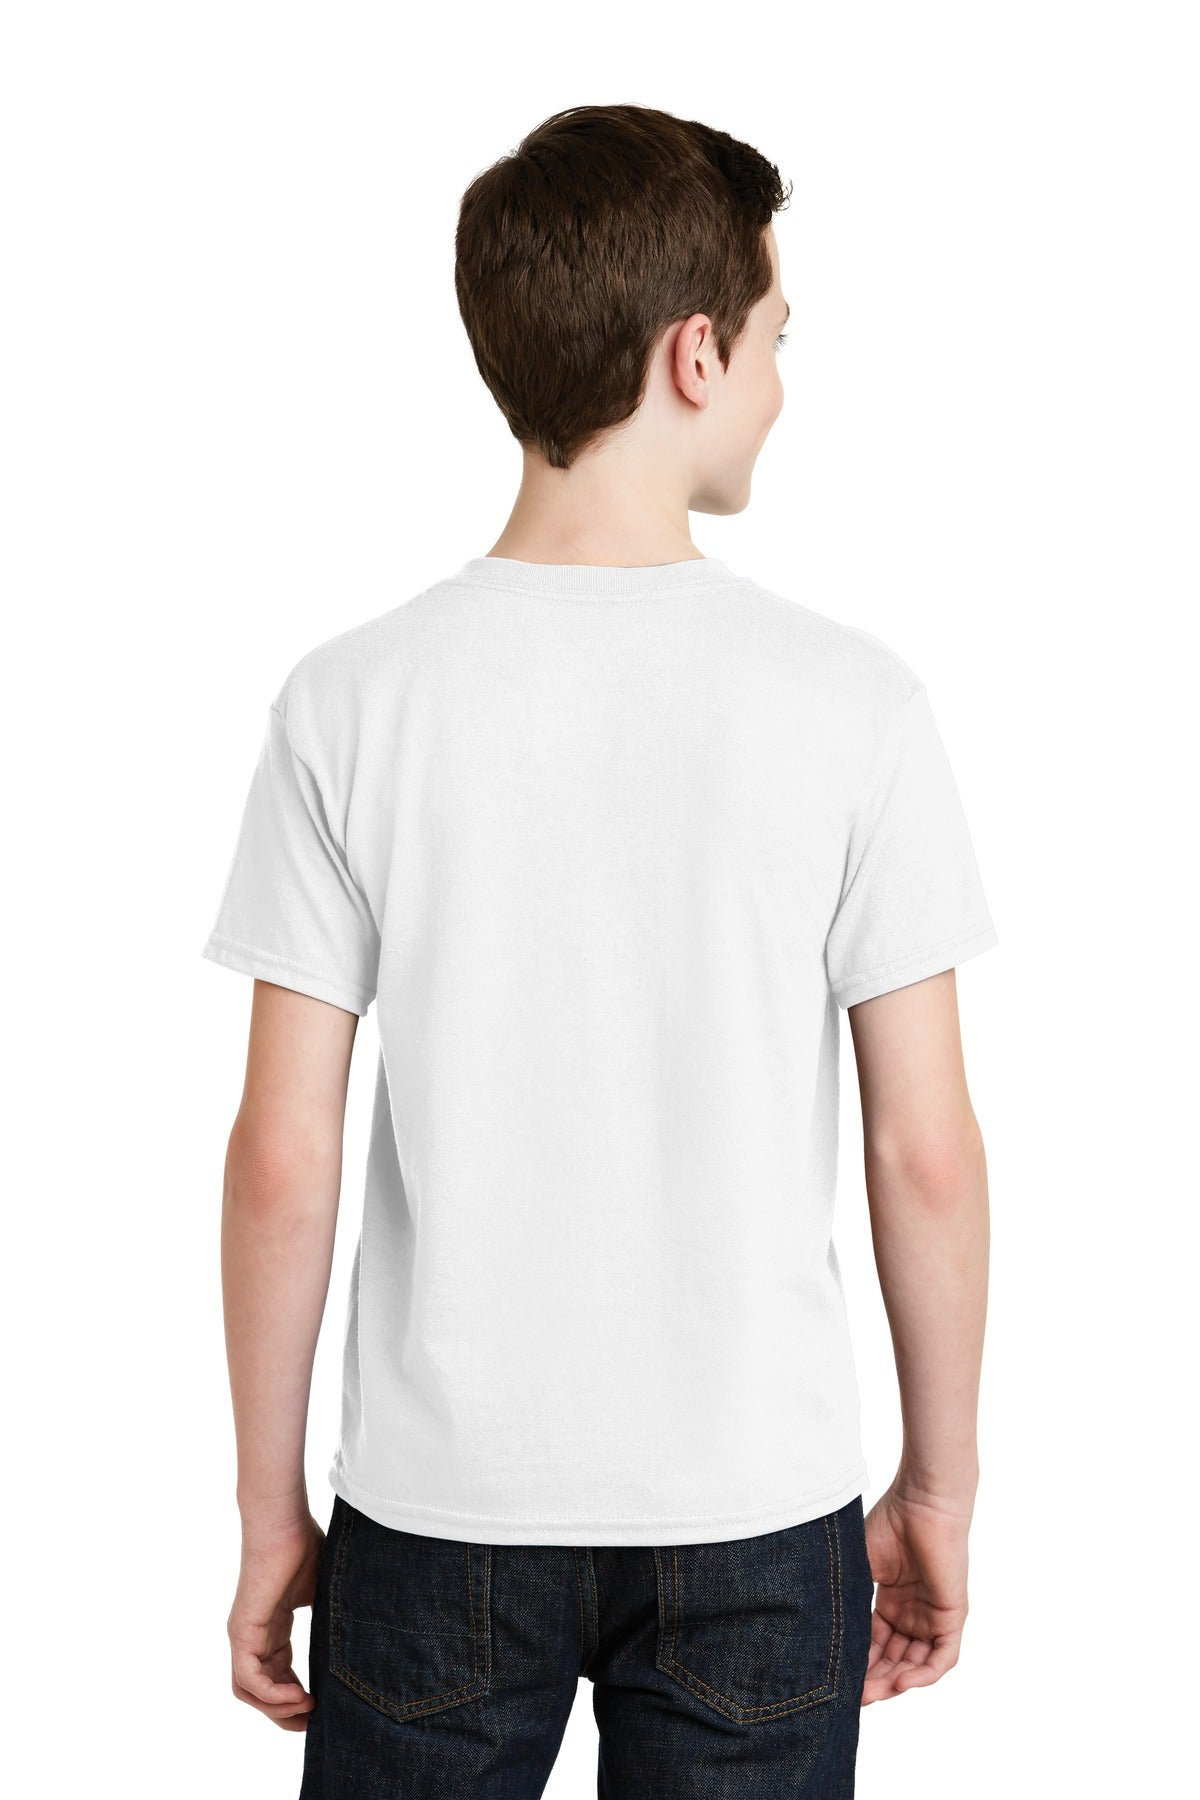 White Gildan Youth DryBlend 50 Cotton/50 Poly T-Shirt.